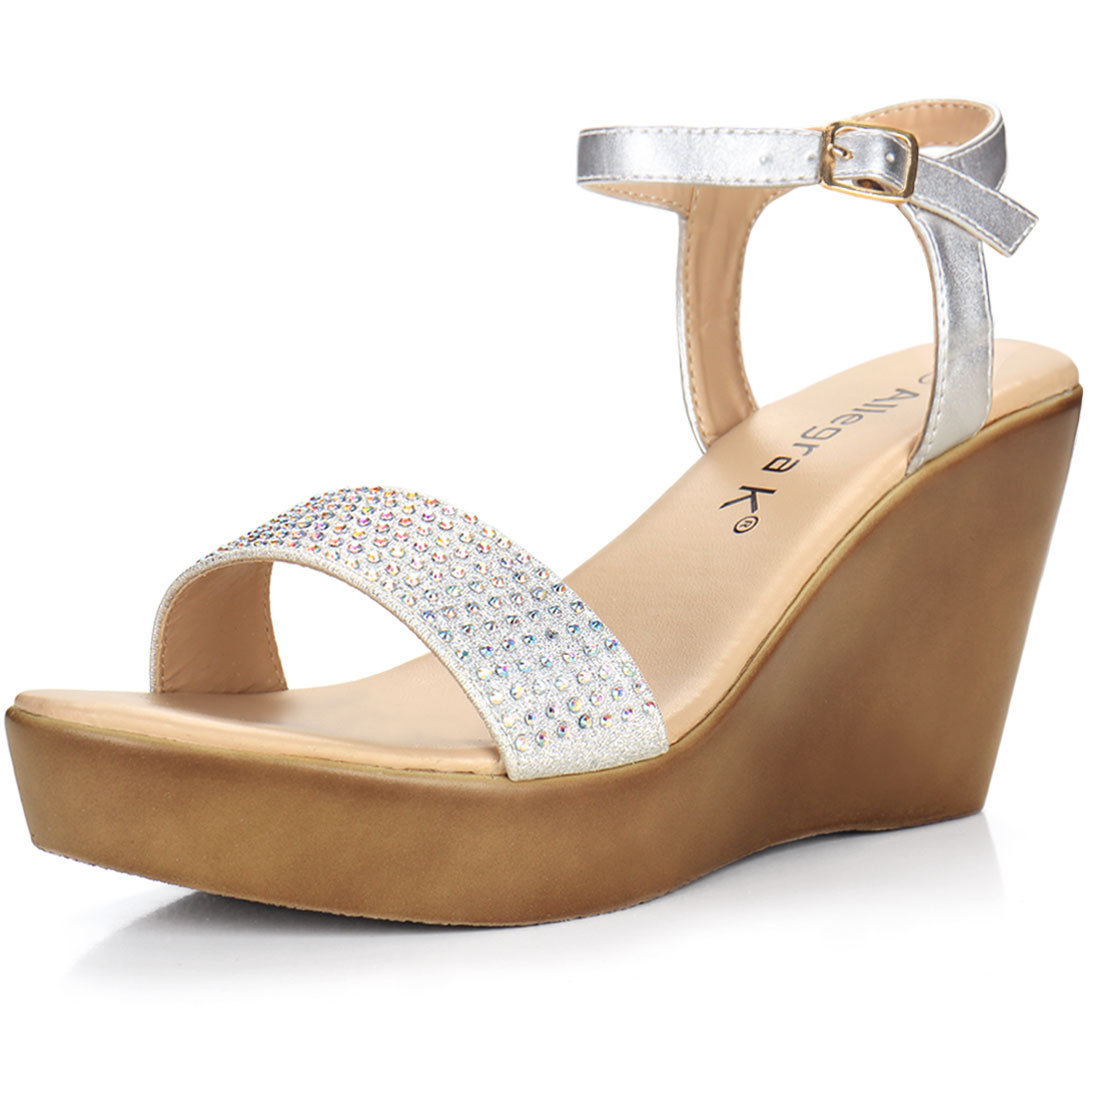 Woman Rhinestones Embellished Open Toe Wedge Sandals Silver US 6